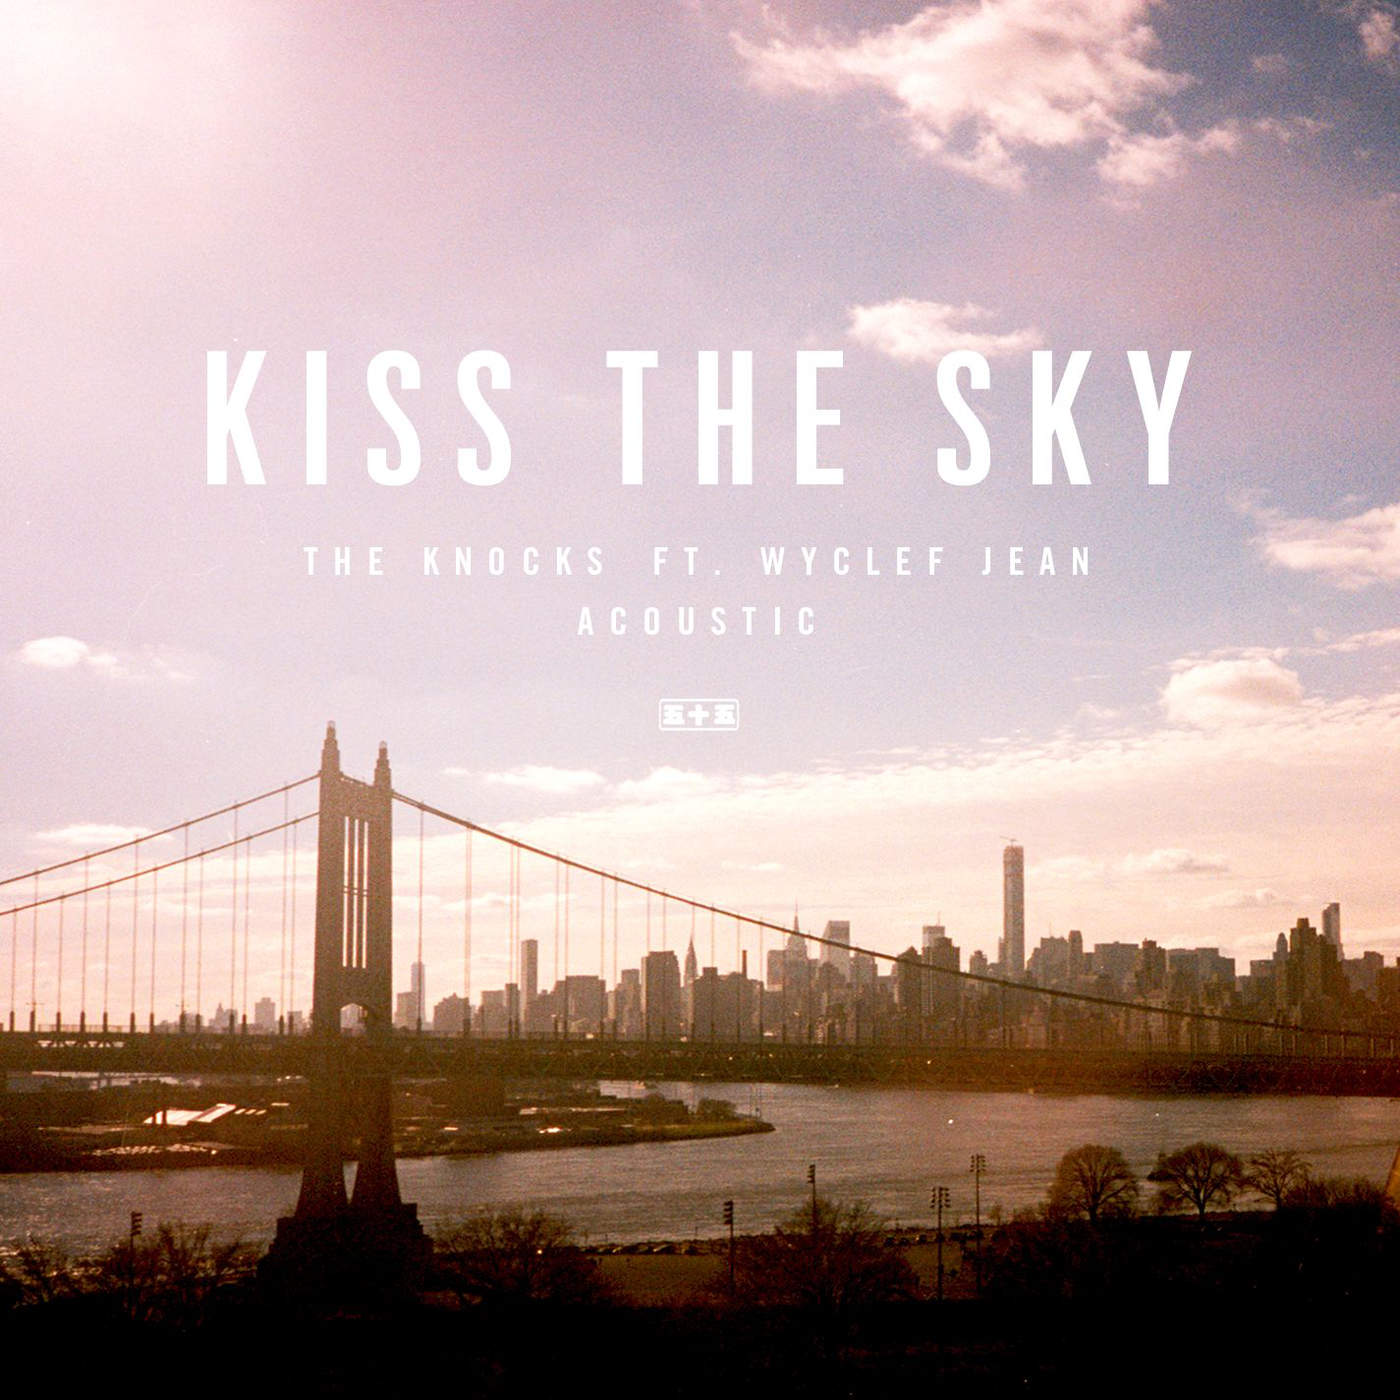 The Knocks - Kiss the Sky (feat. Wyclef Jean) [Acoustic] - Single Cover